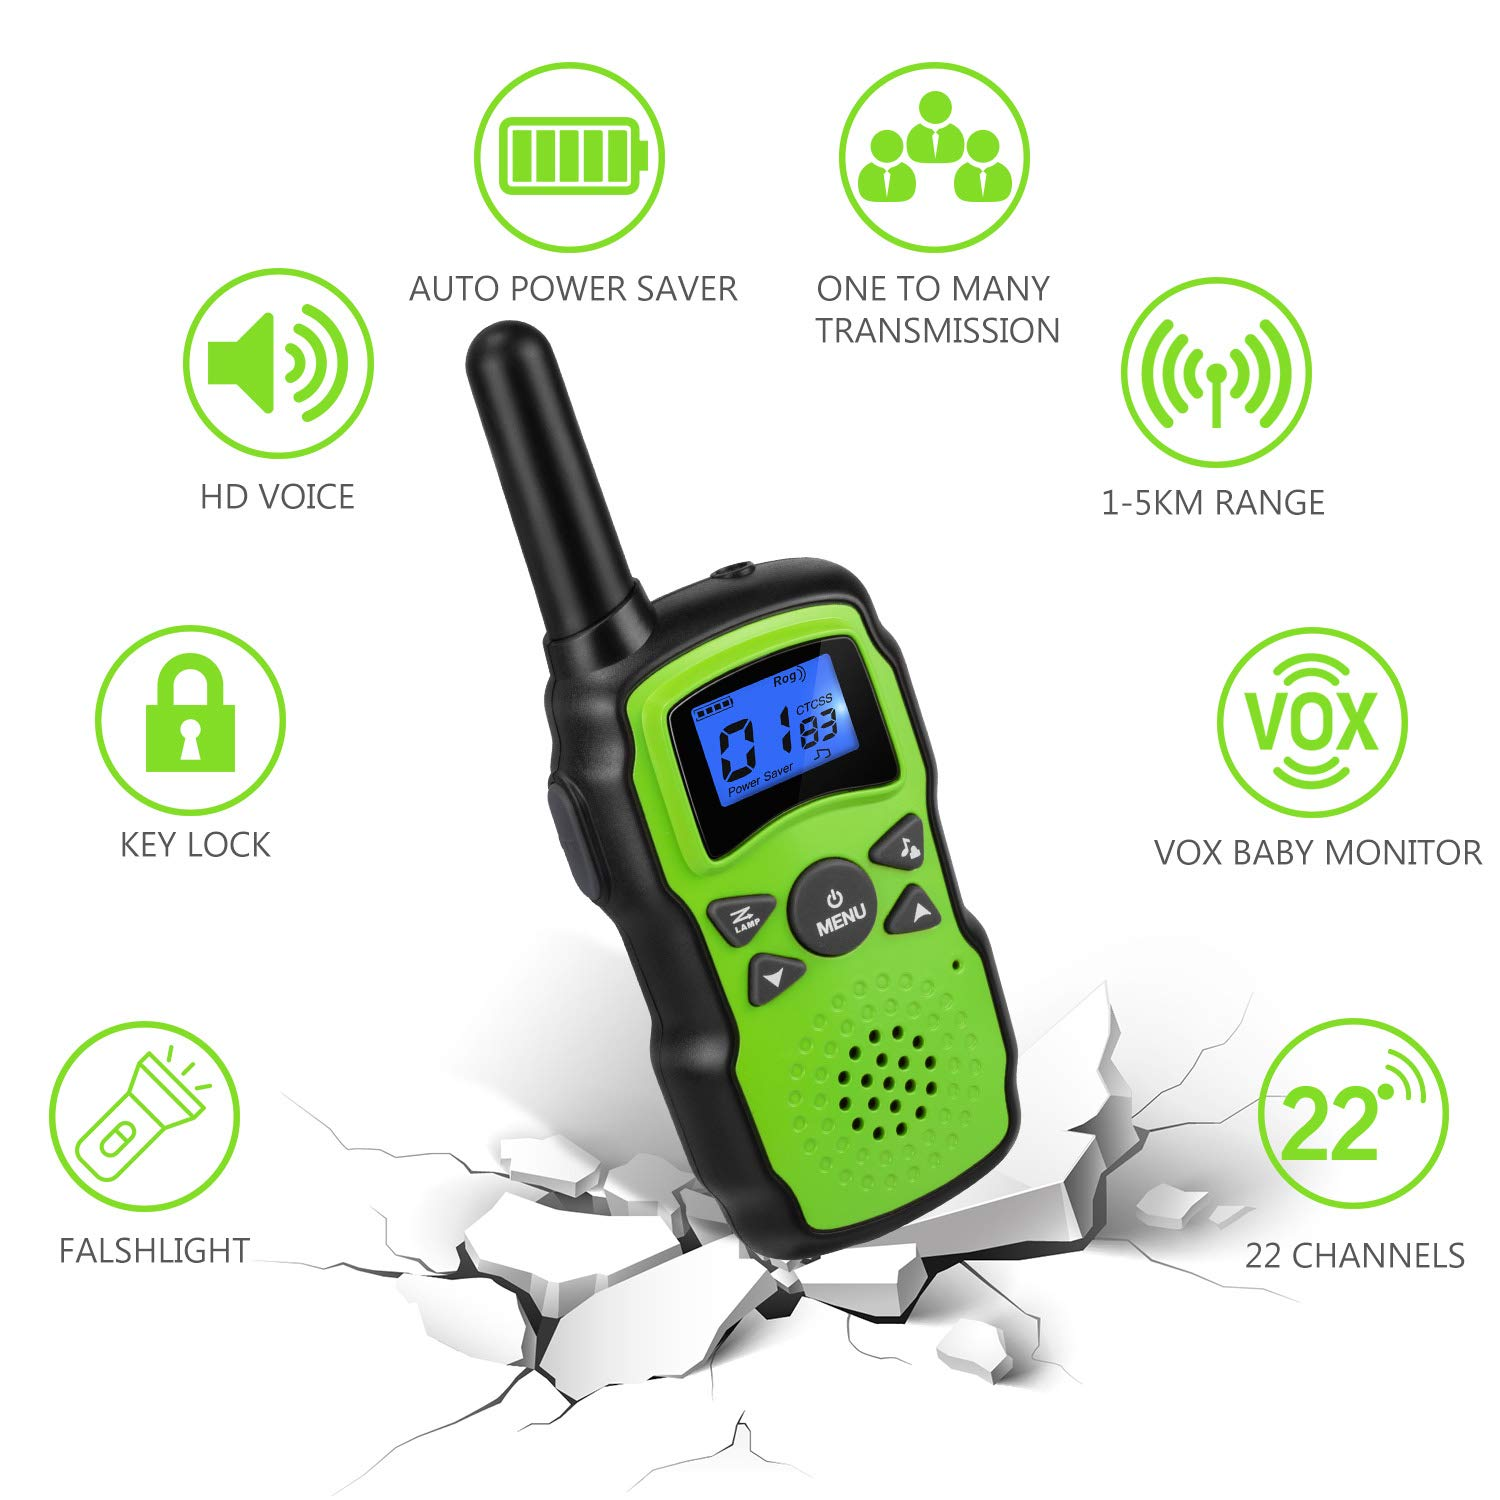 Wishouse 2 Rechargeable Walkie Talkies for Kids with Charger Battery, Two Way Radio Family Talkabout for Adult Cruise Ship Long Range, Outdoor Camping Hiking Fun Toy Birthday Gift for Girls Boys Green by Wishouse (Image #3)